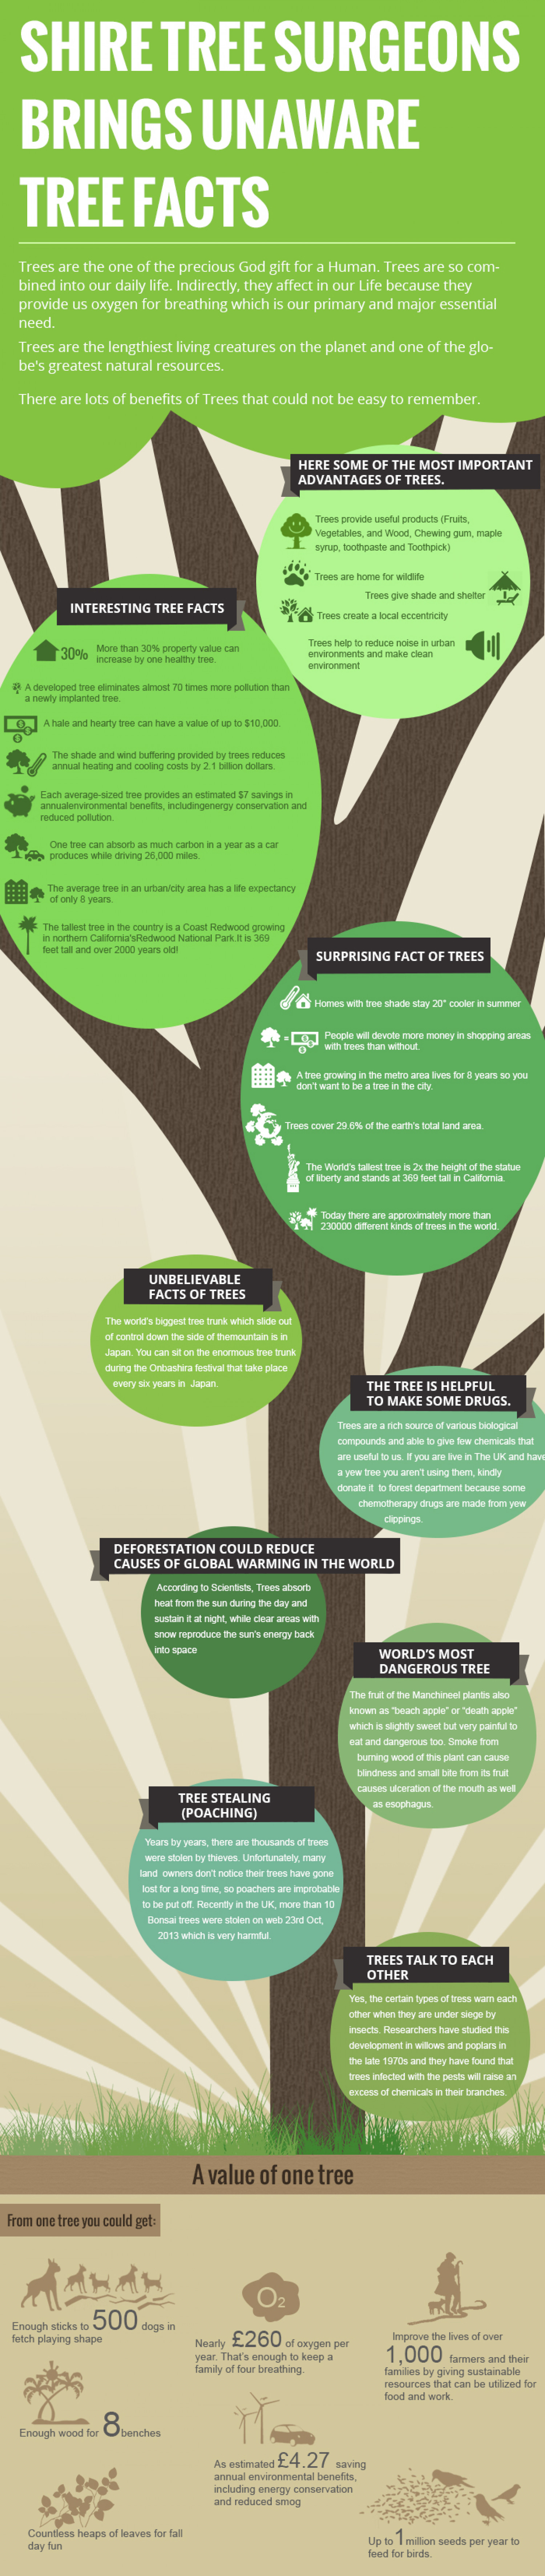 Shire Tree Surgeons Brings Unaware Tree Facts Infographic